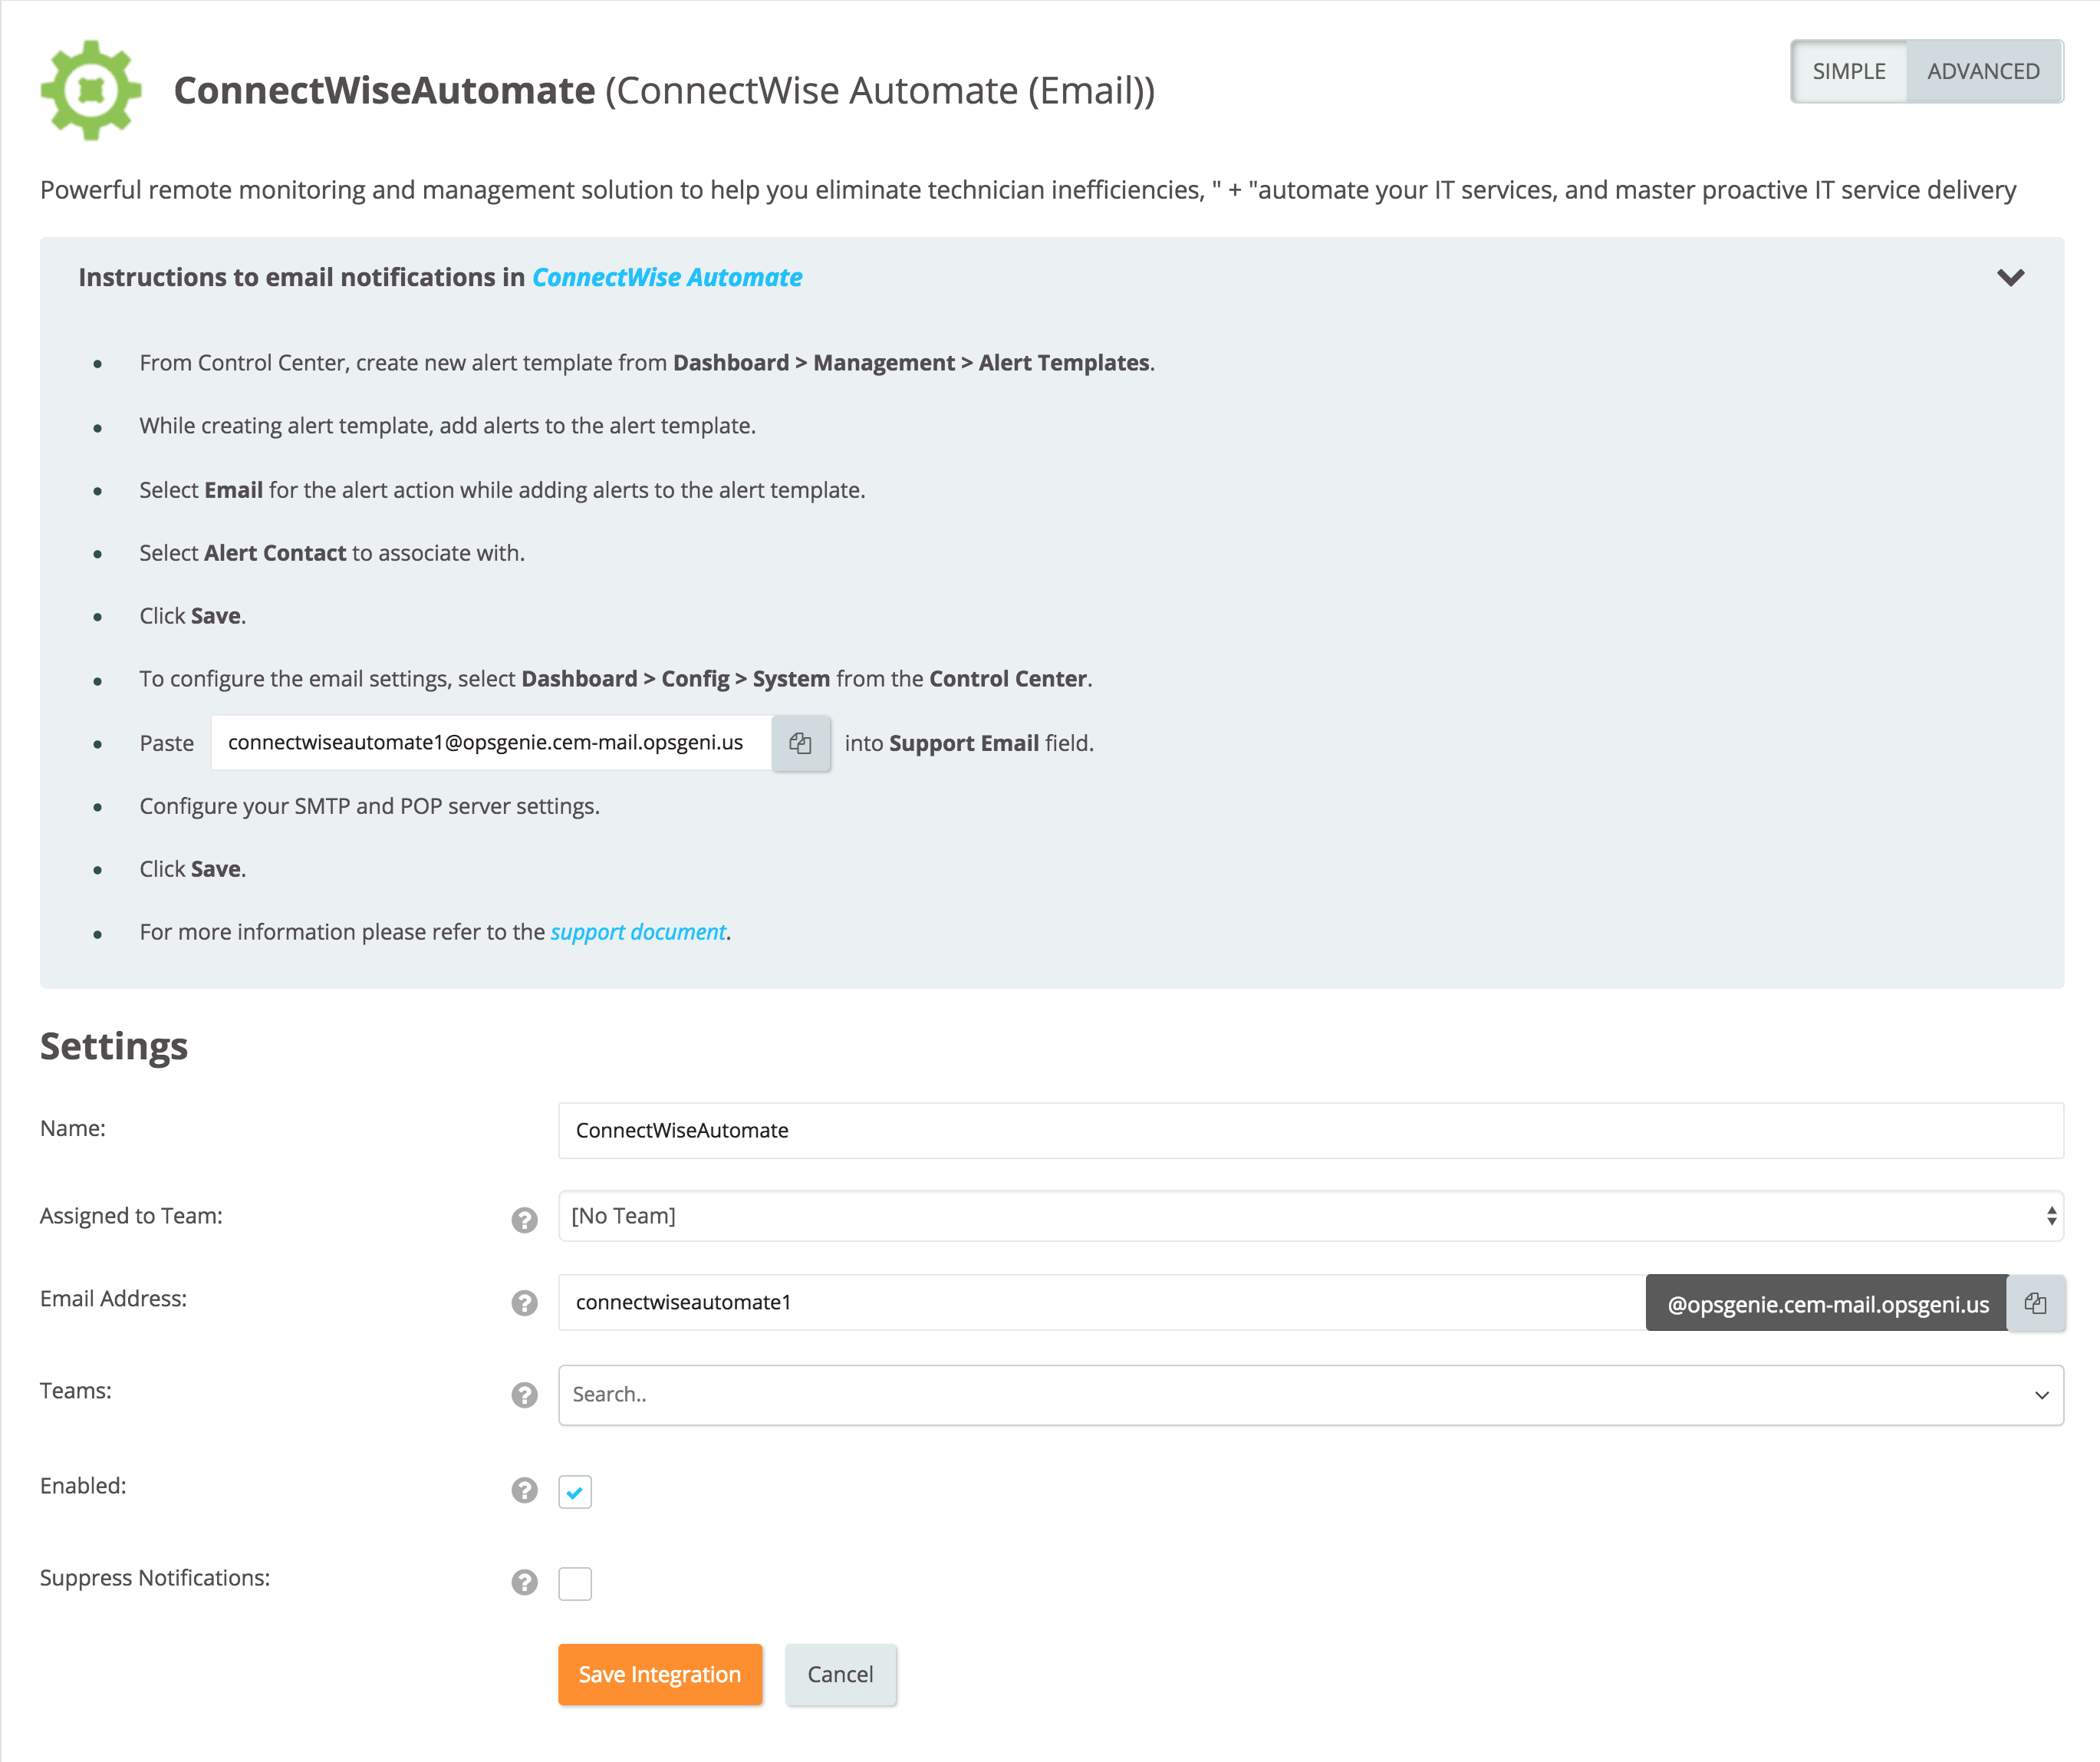 ConnectWise Automate (Email) Integration